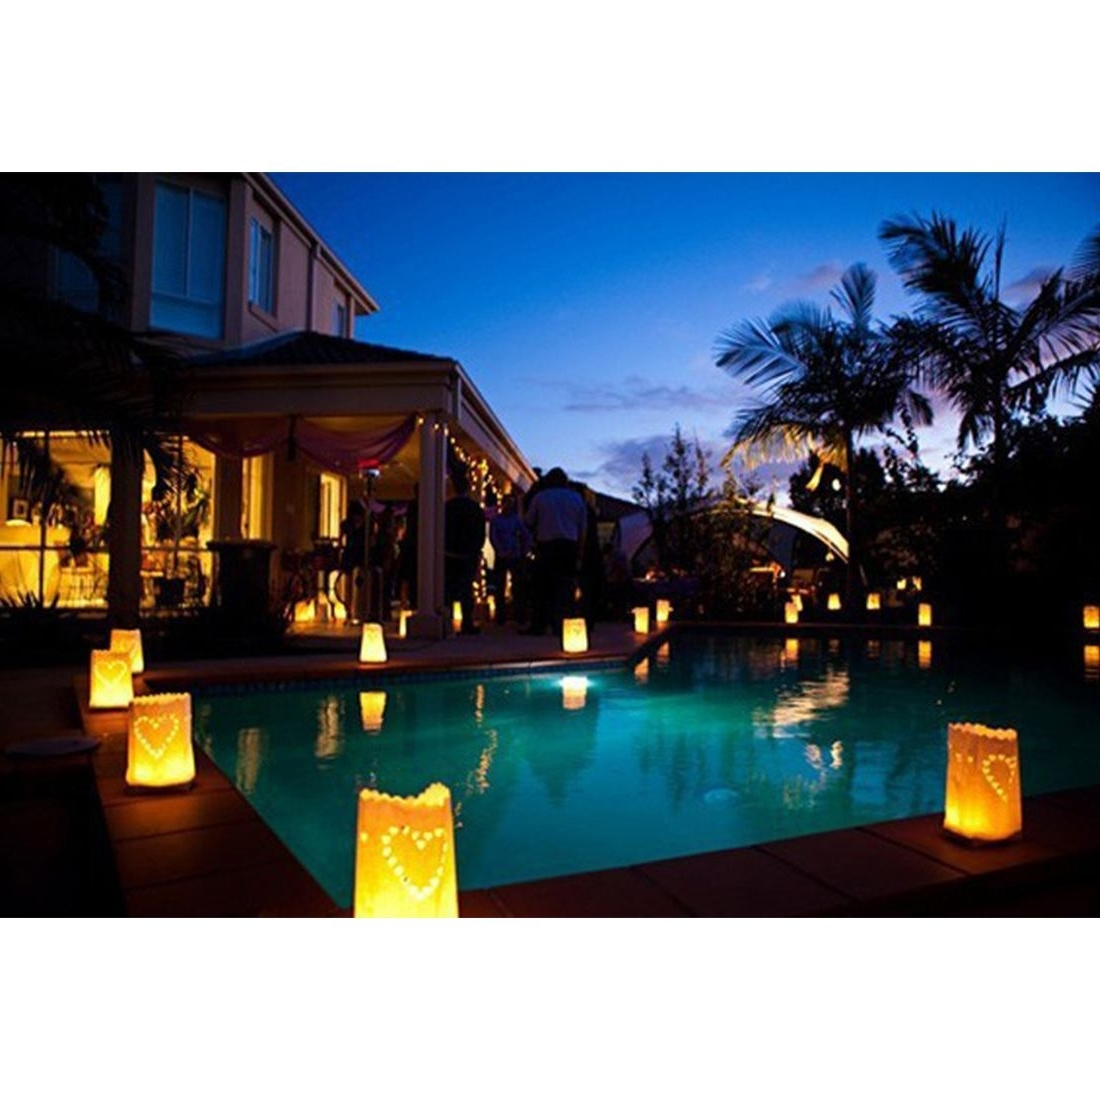 30 Pcs Tea Light Holder Luminous Paper Lantern Candle Bag For Party Intended For Most Recently Released Outdoor Pool Lanterns (Gallery 7 of 20)